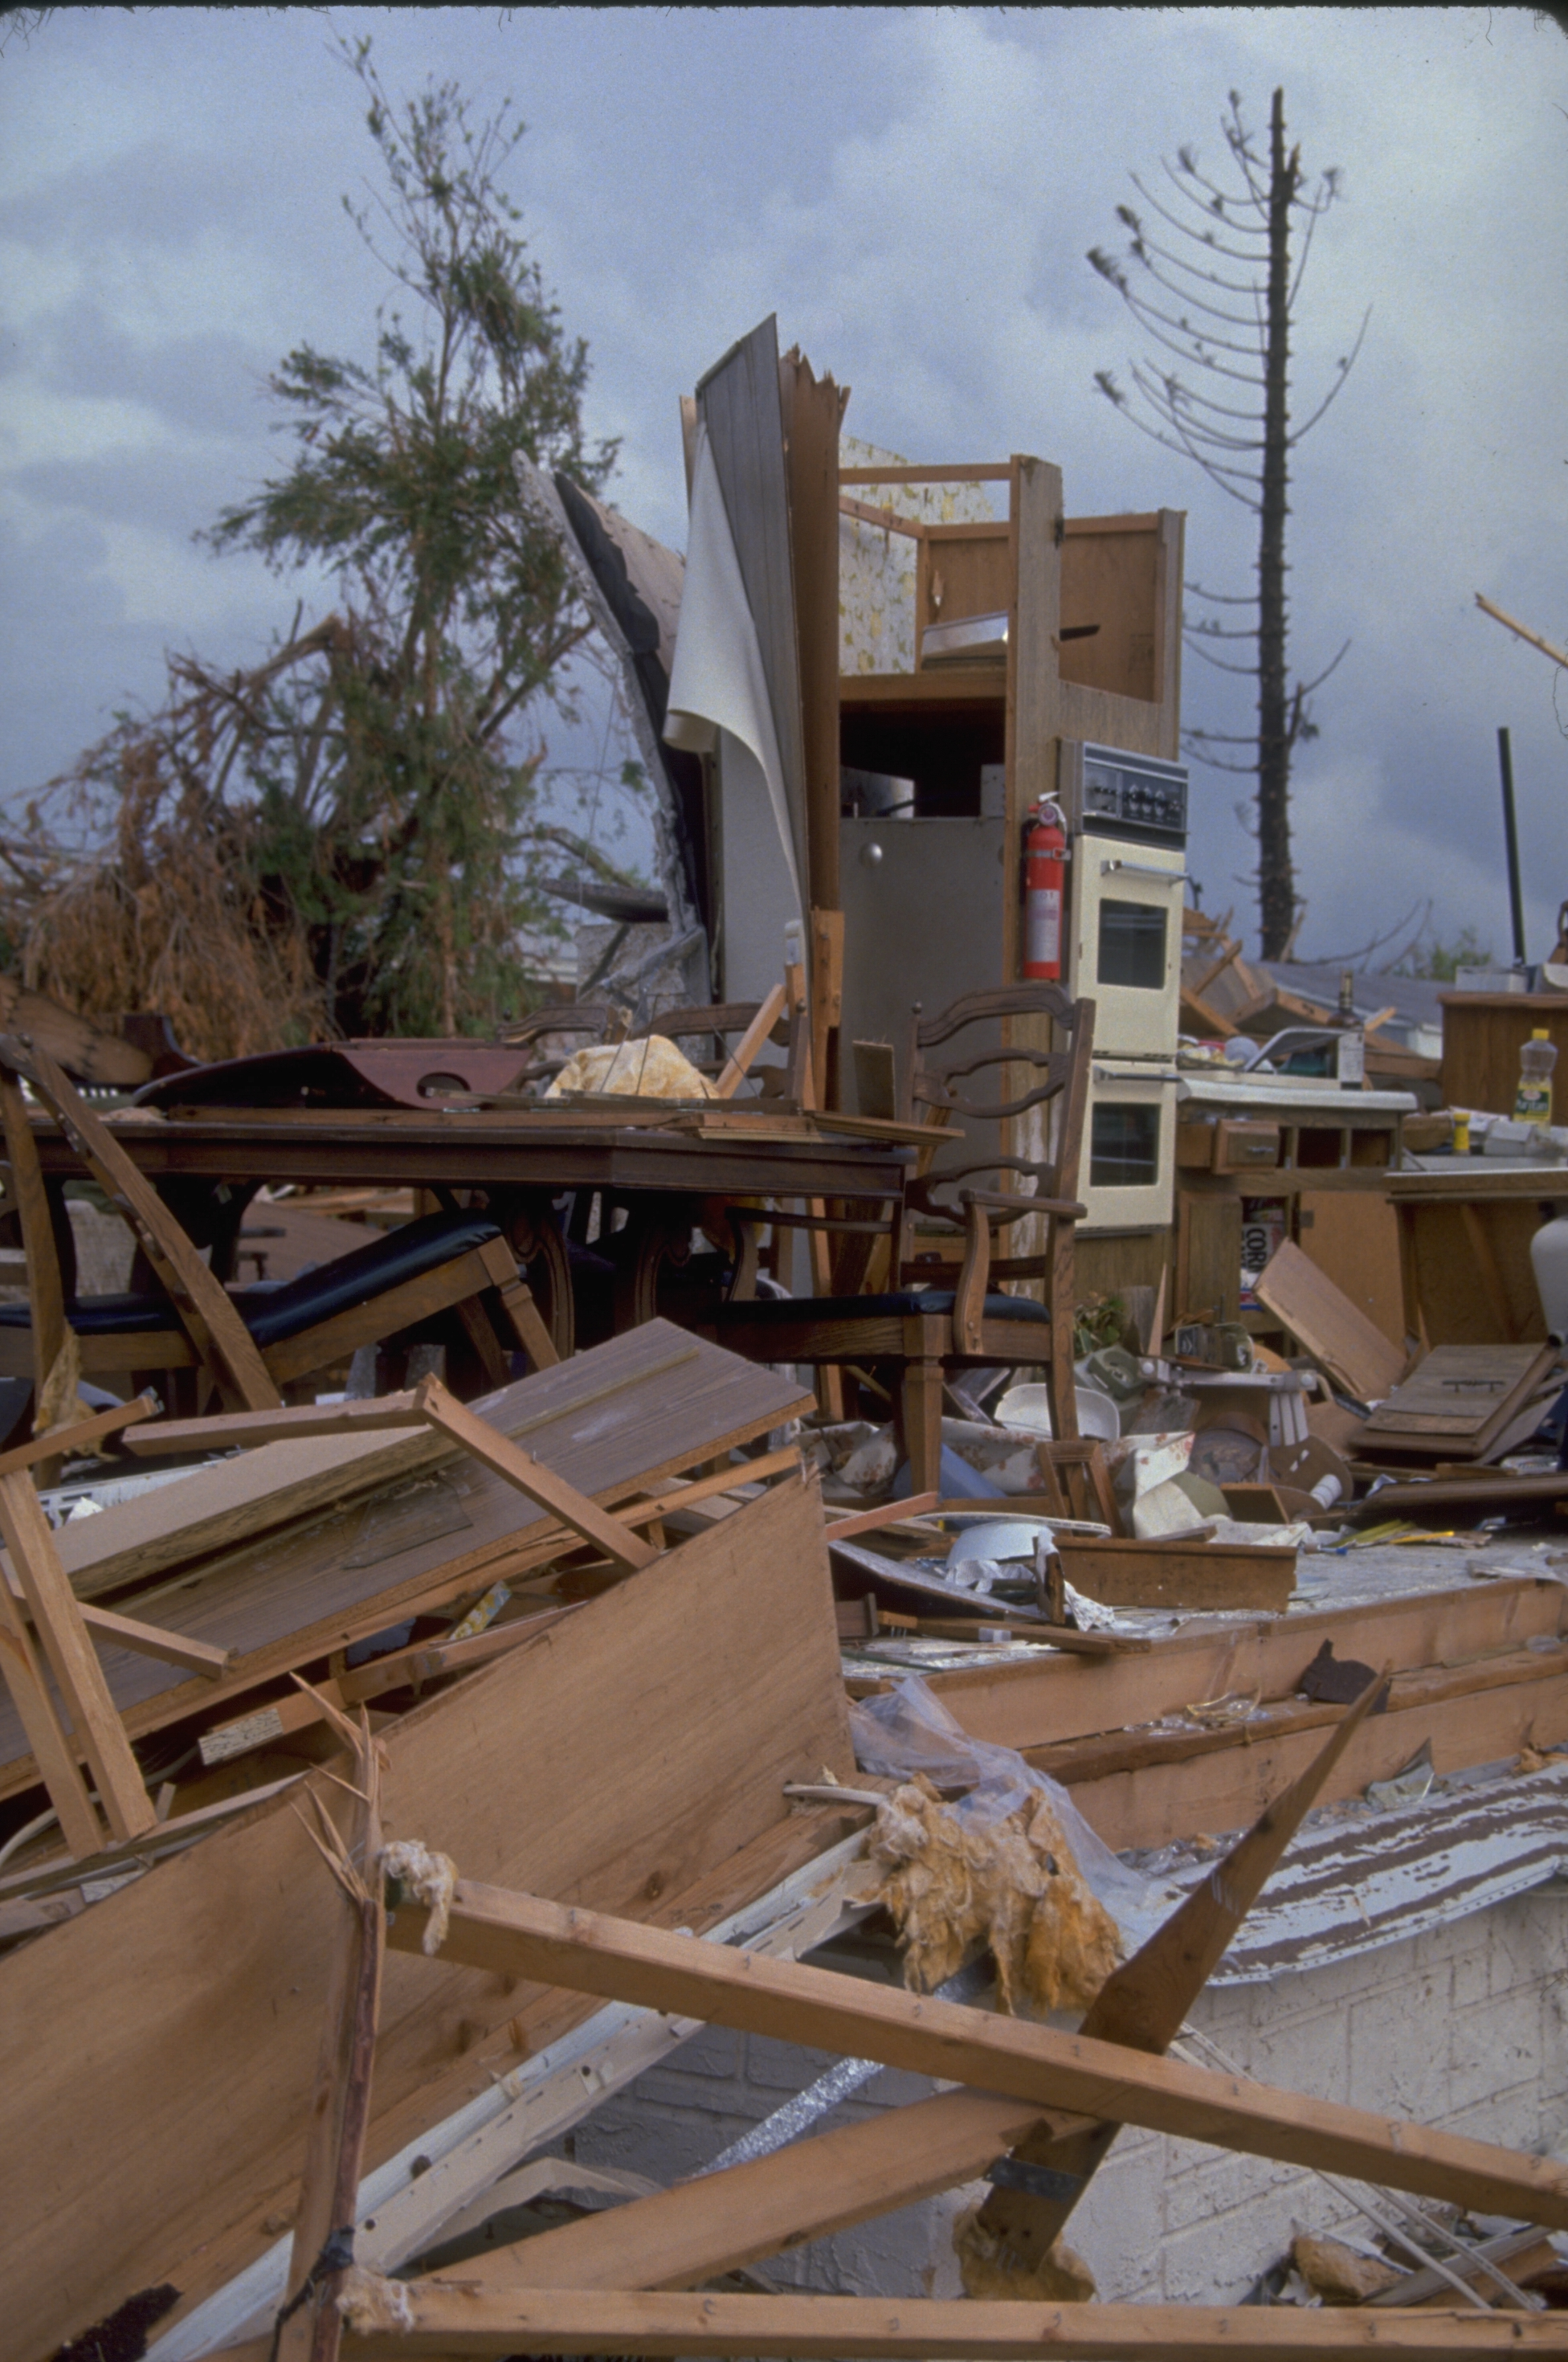 an analysis of hurricane andrew Hurricane andrew and the housing crisis by pre-andrew analysis of south florida housing hurricane damage and destruction to housing homestead, florida city.